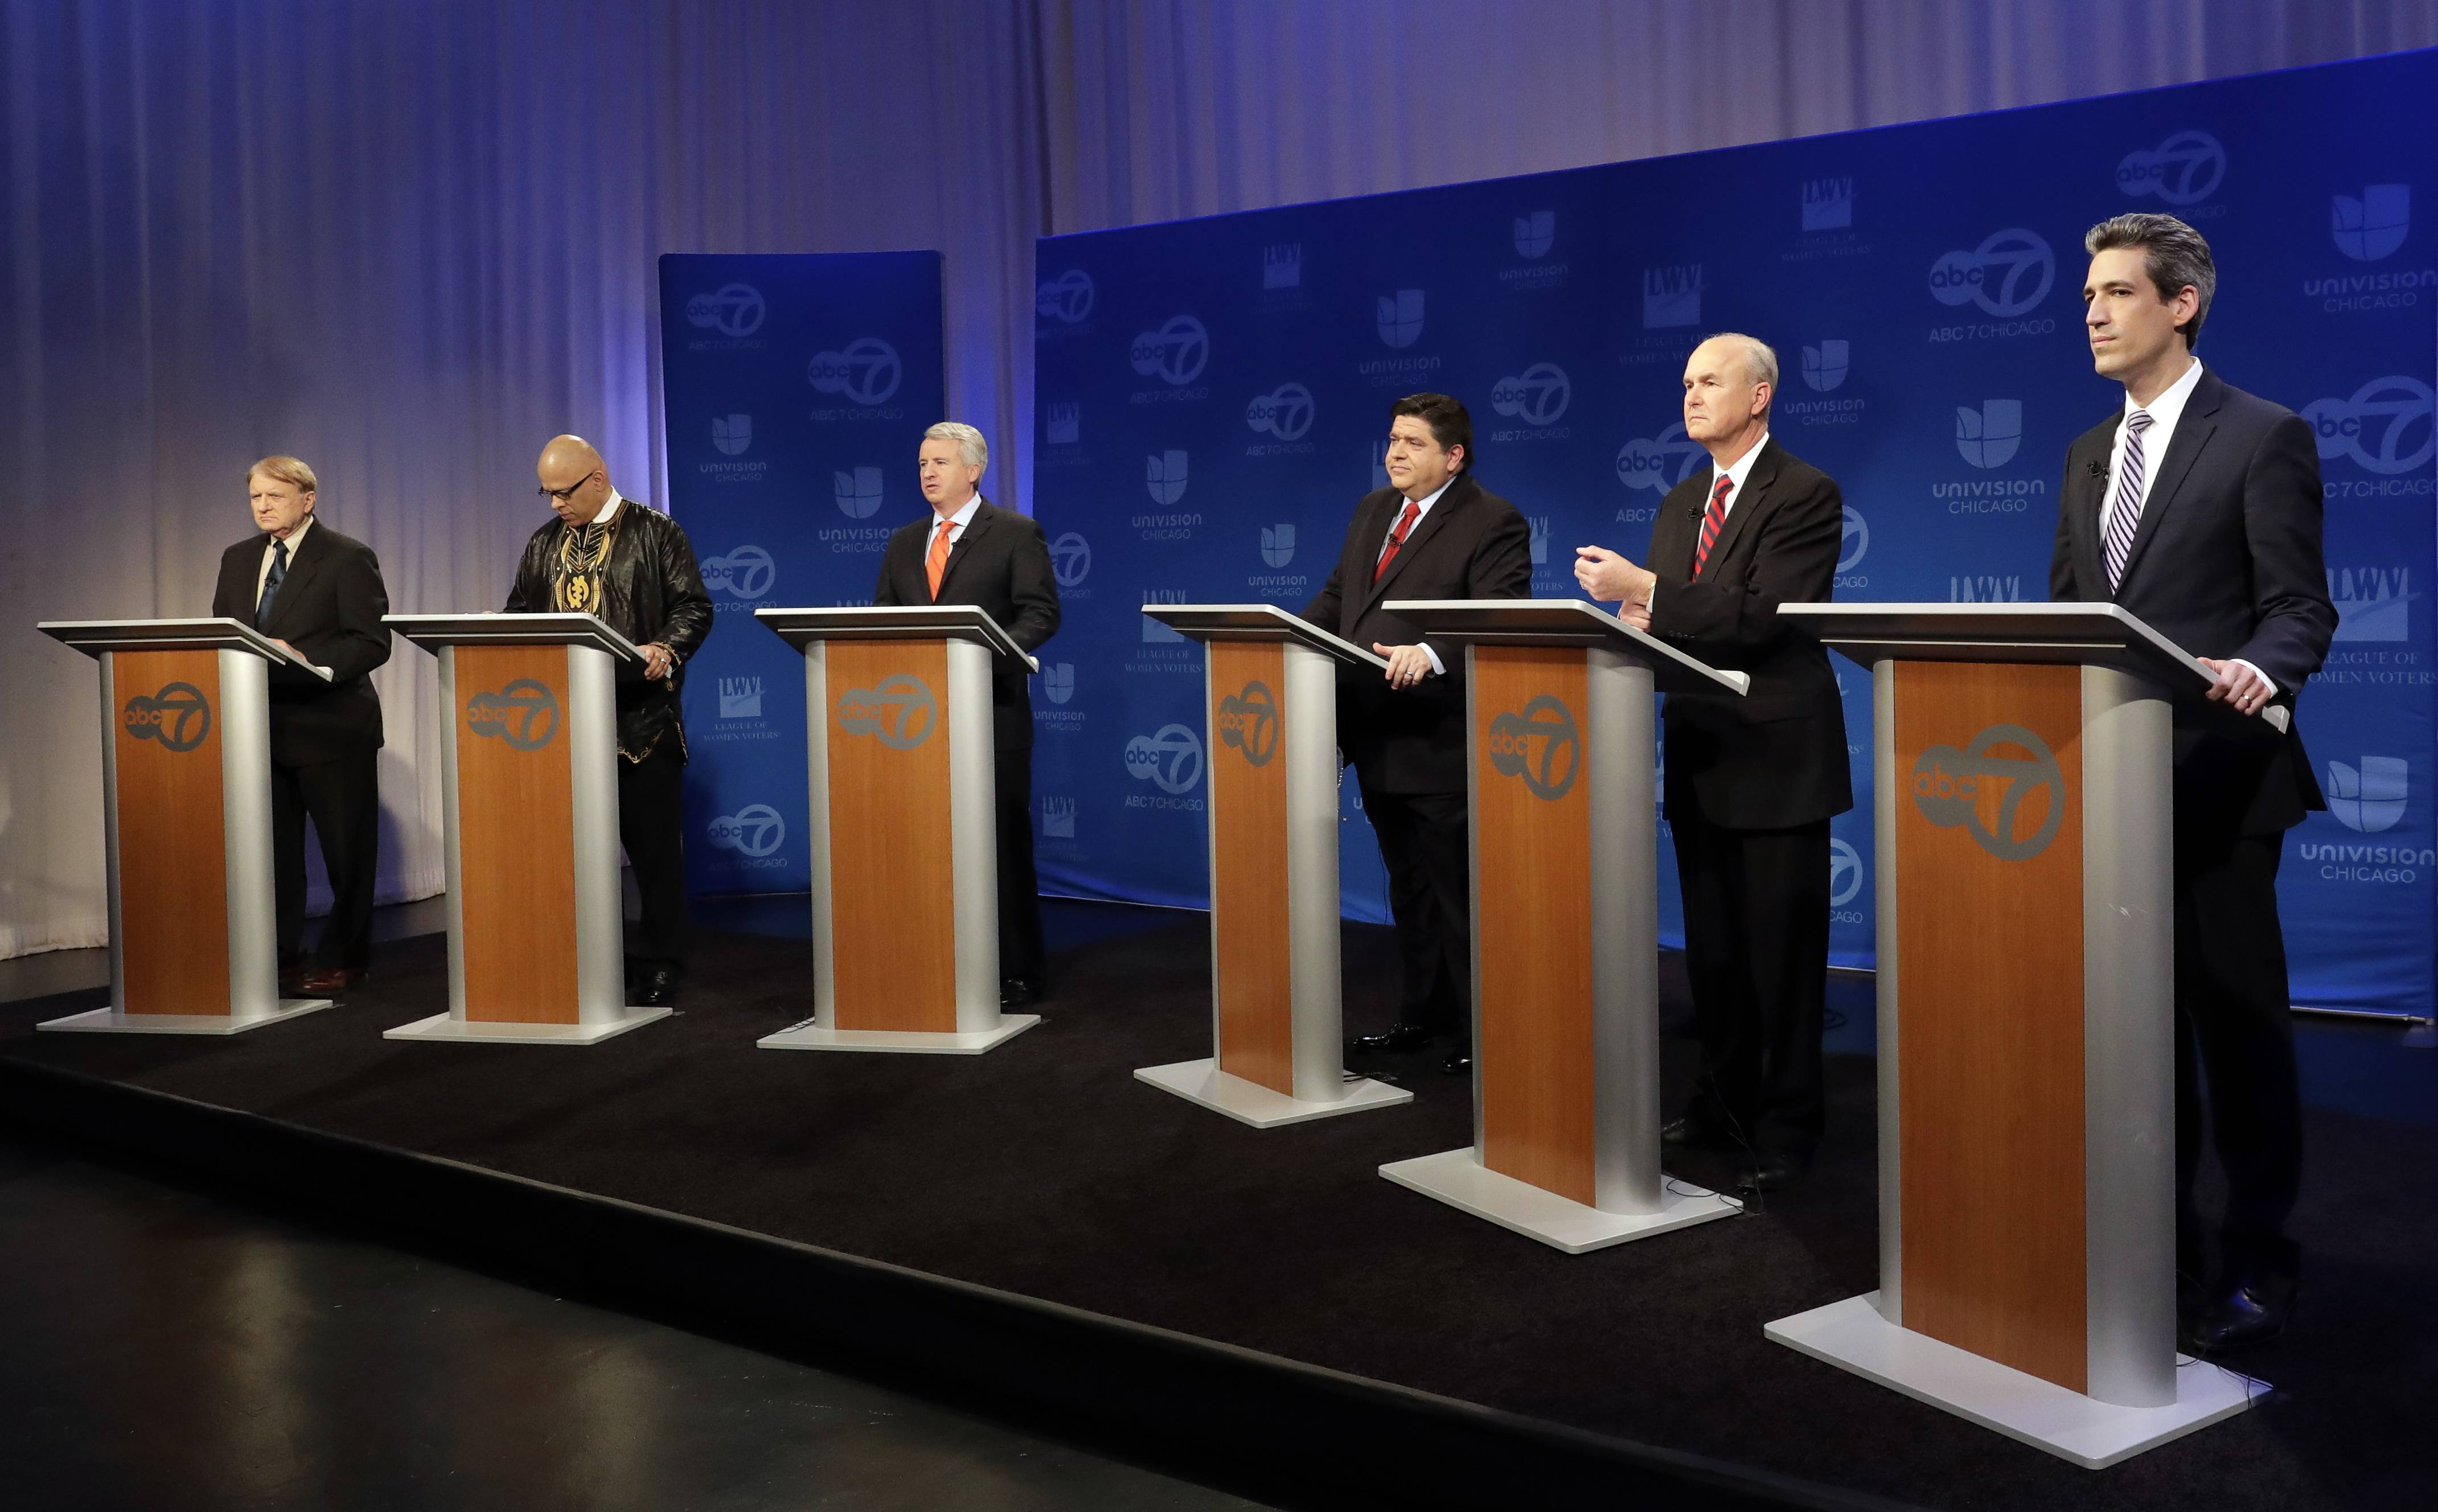 Democratic gubernatorial candidates, left to right, Robert Marshall, Tio Hardiman, Chris Kennedy, J.B. Pritzker, Bob Daiber, and Illinois Sen. Daniel Biss participate in a debate March 2 in Chicago. The nominee will face either Republican Gov. Bruce Rauner or his conservative challenger, State Rep. Jeanne Ives, in November.